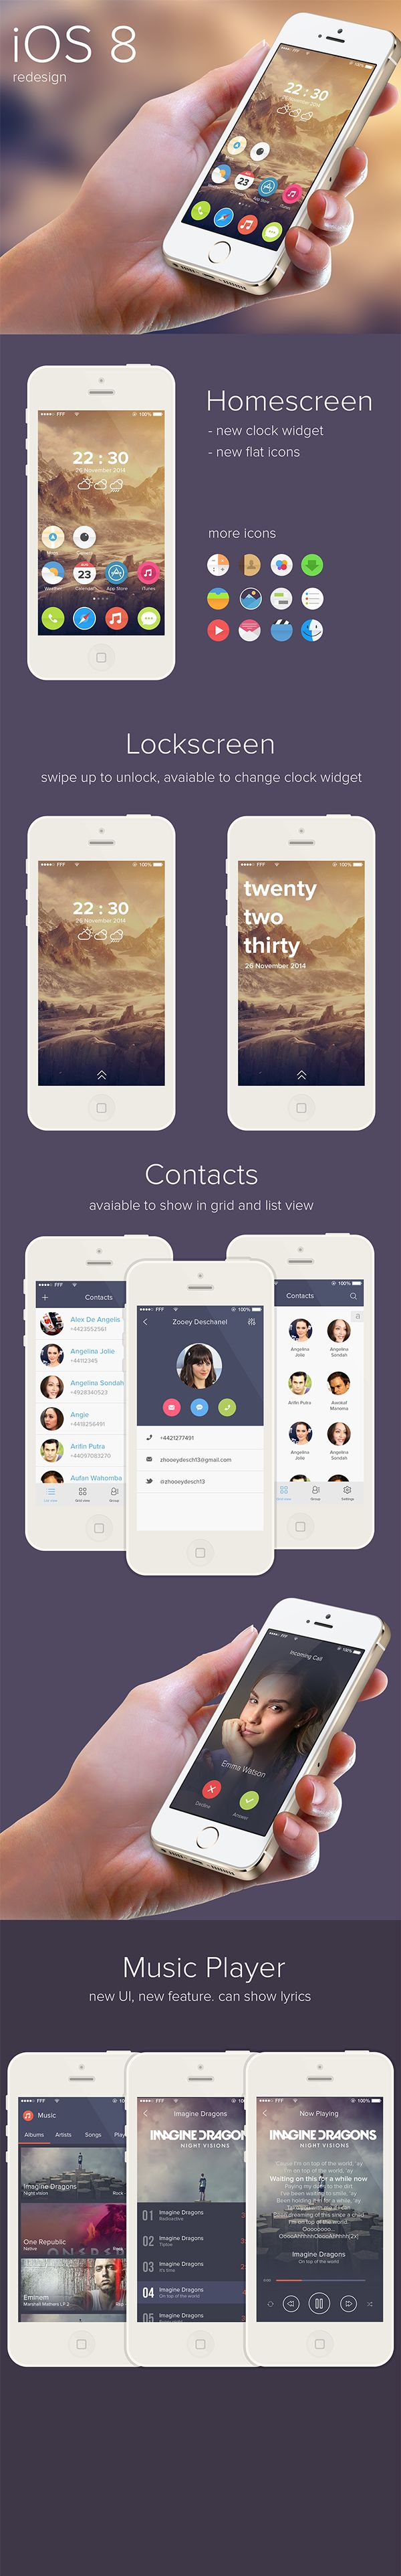 iOS 8 redesign by Ghani Pradita, via Behance #ui #interface #mobile #iOS8